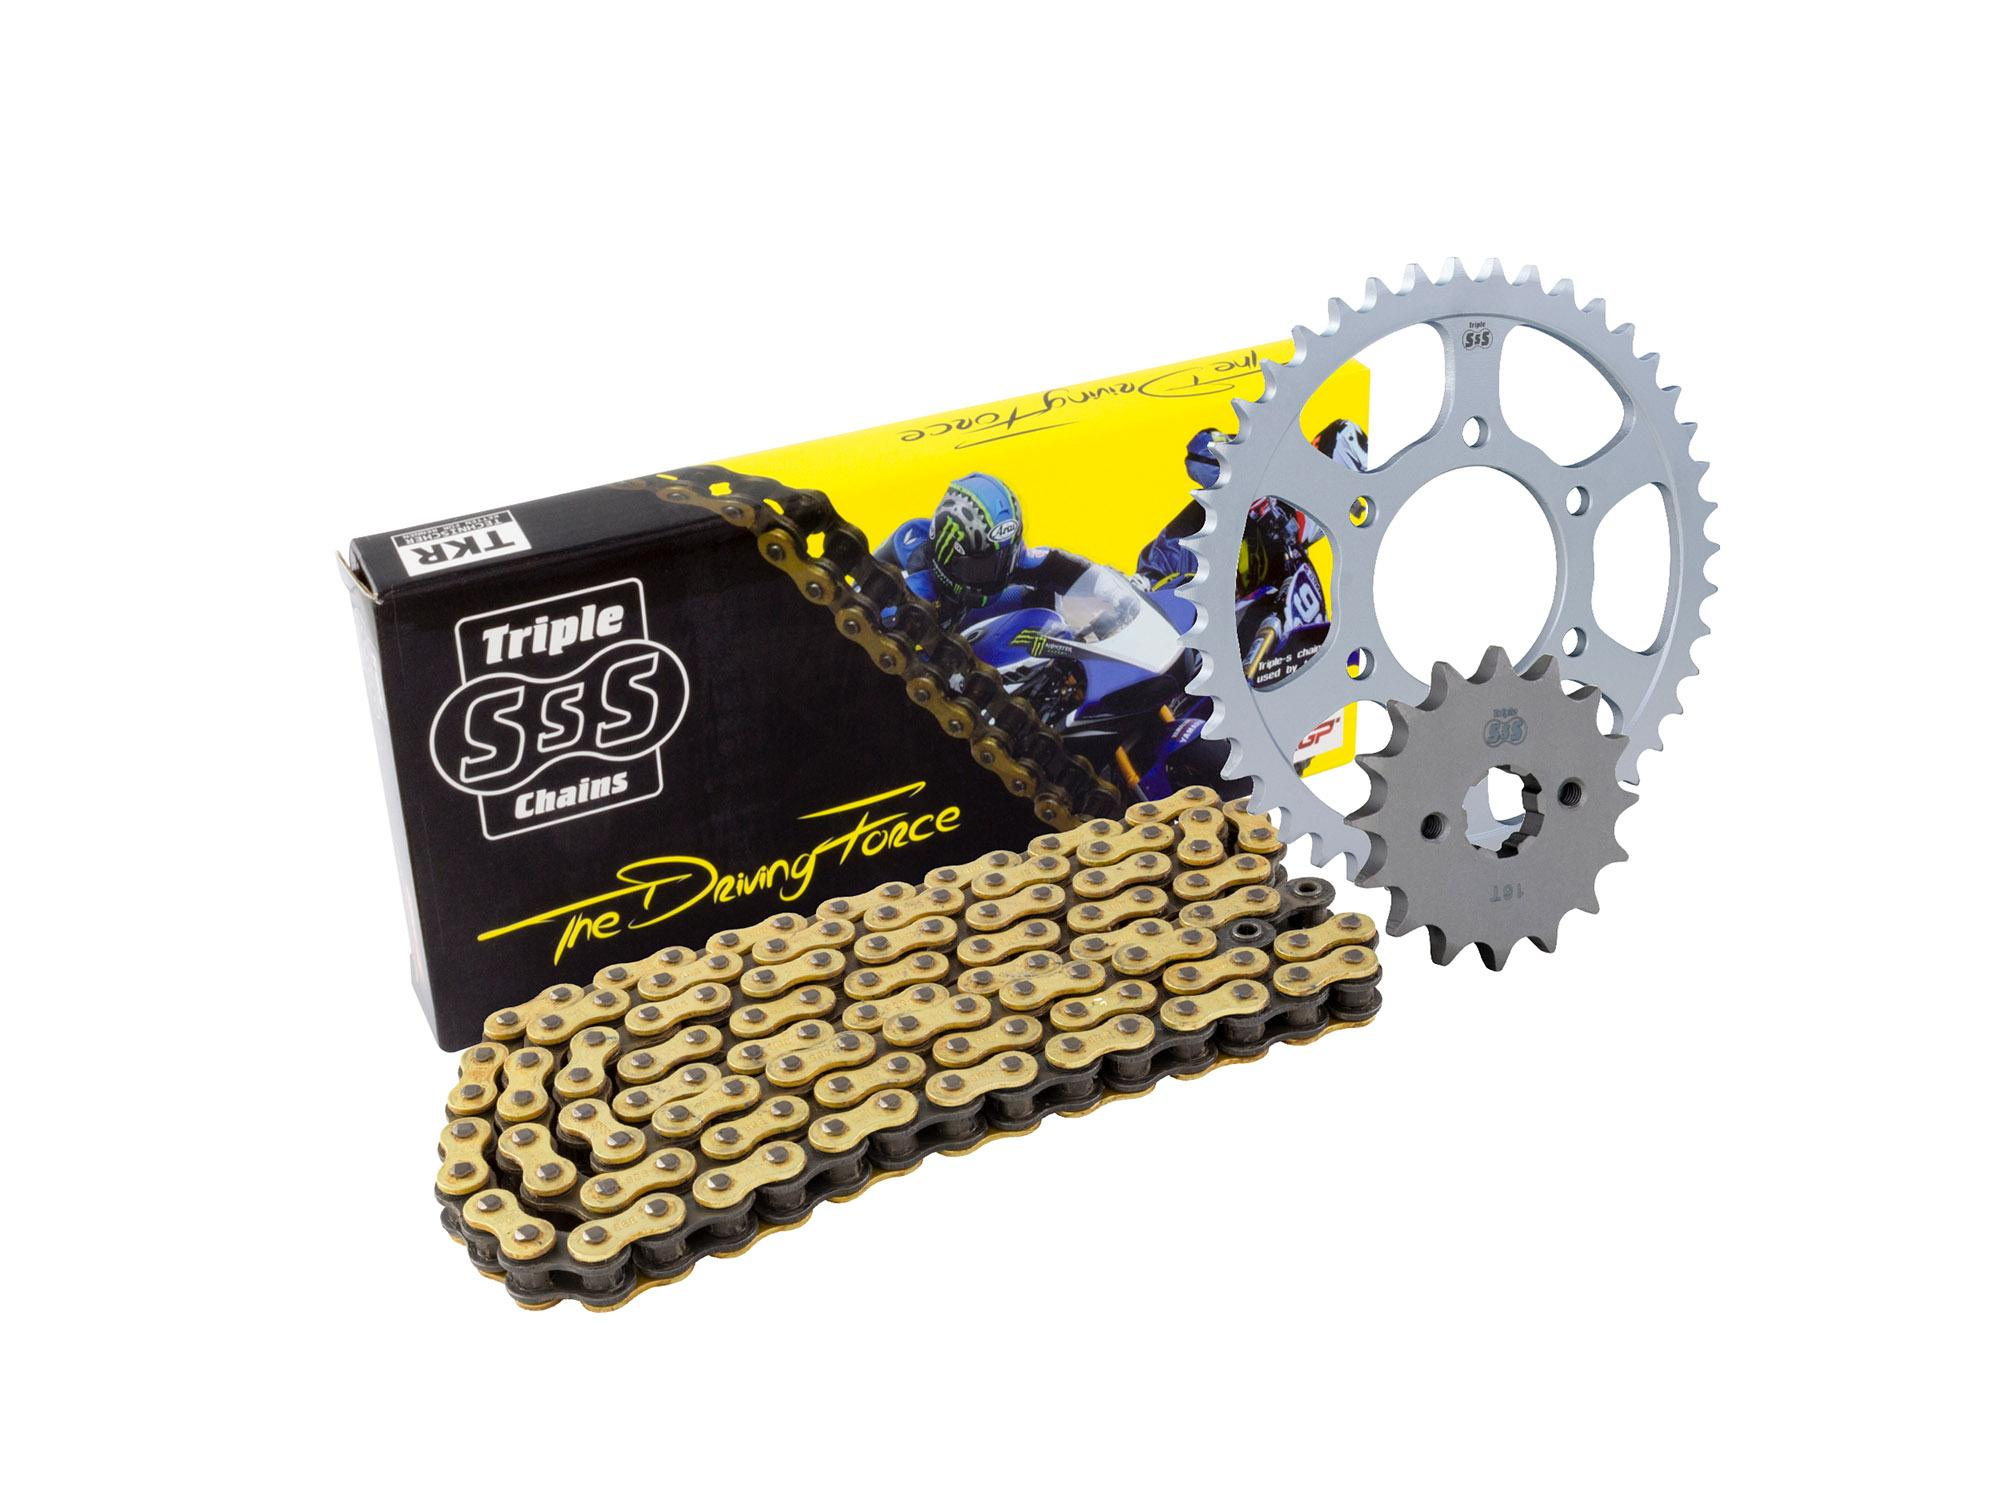 Honda CBF1000 F / ABS 06-10 Chain & Sprocket Kit: 16T Front, 43T Rear, HD O-Ring Gold Chain 530H 120Link